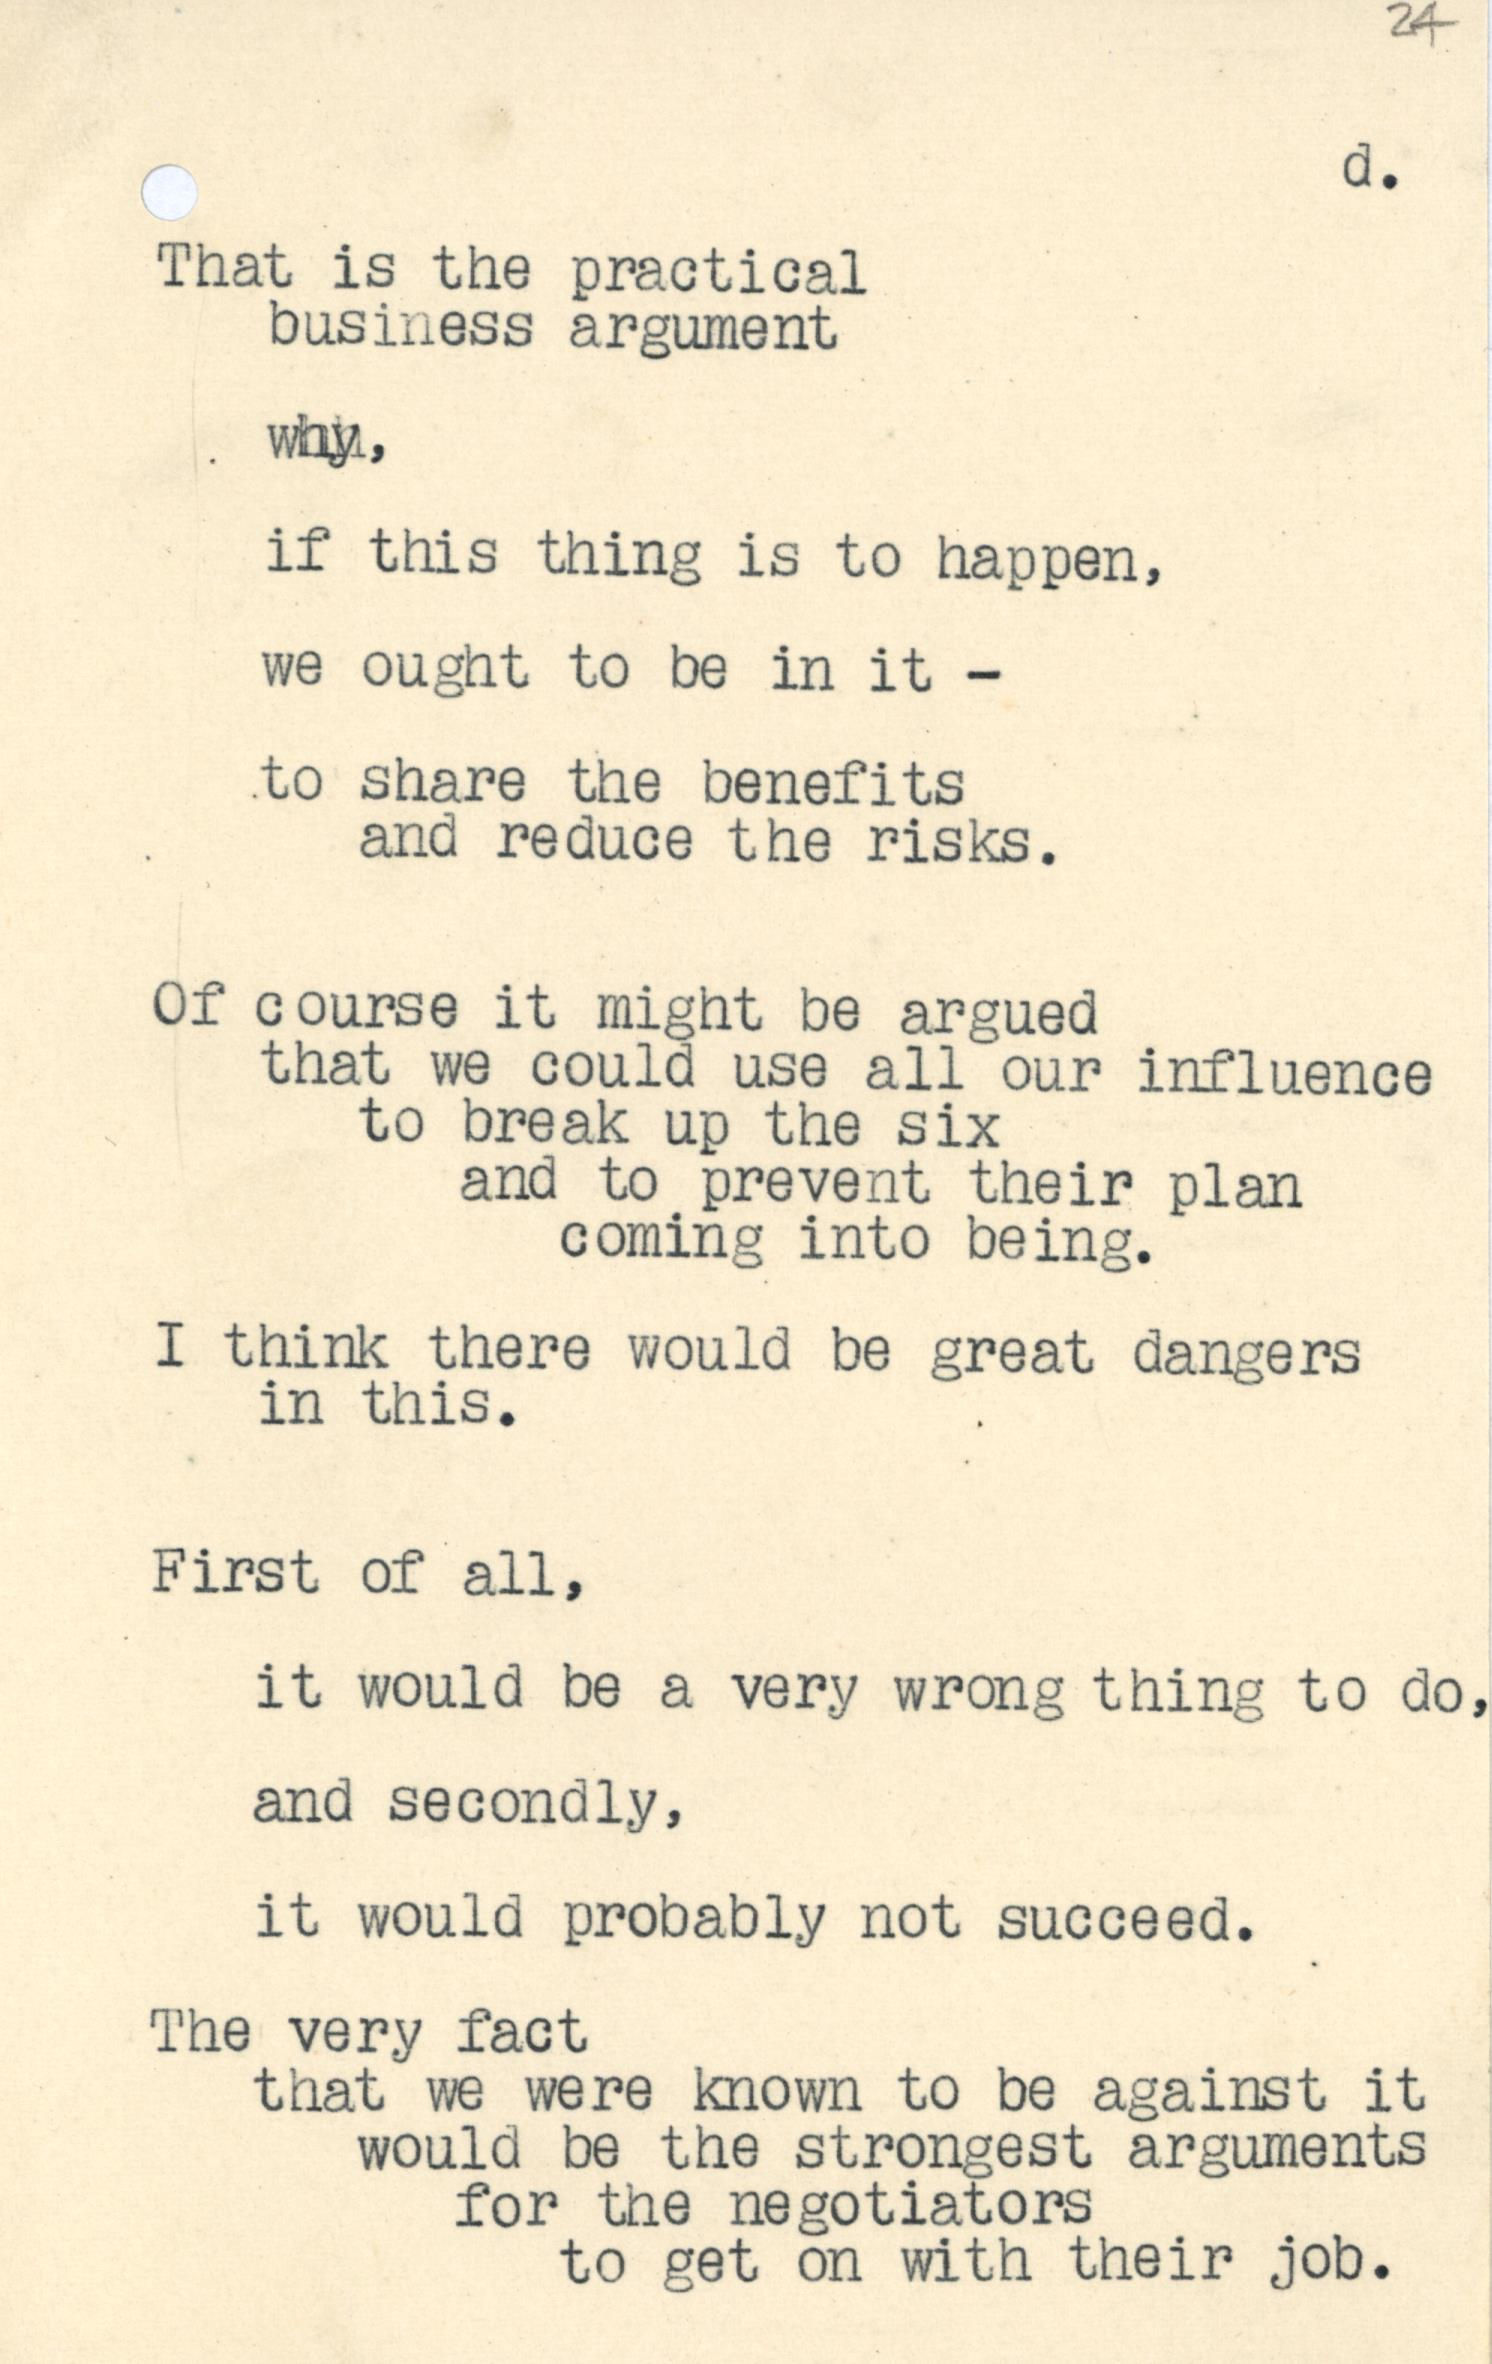 MS. Macmillan dep. c. 920, fol. 24: Luncheon Speech for European Free Trade Area, 20 Feb 1957. Reproduced with kind permission of the Trustees of the Harold Macmillan Book Trust.